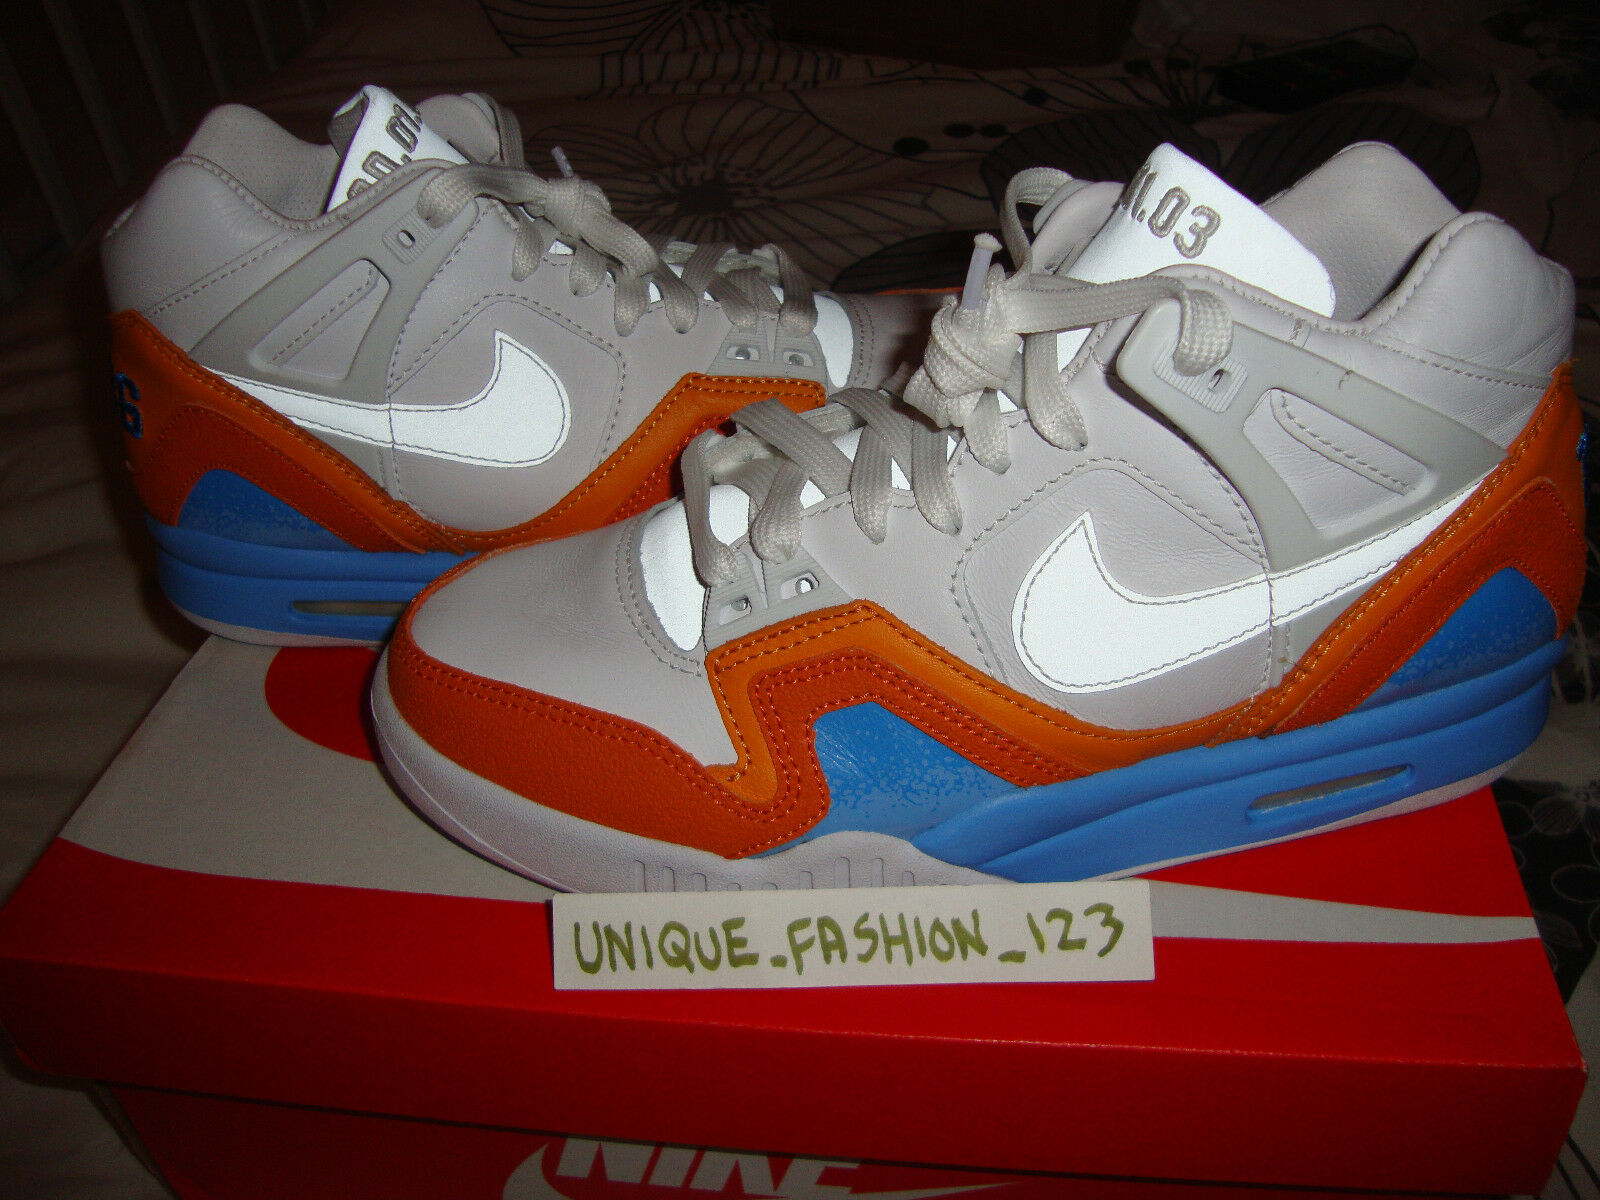 Nike air tech challenge ii 2 agassi agassi agassi australische us open sp wimbledon. 0f39b4